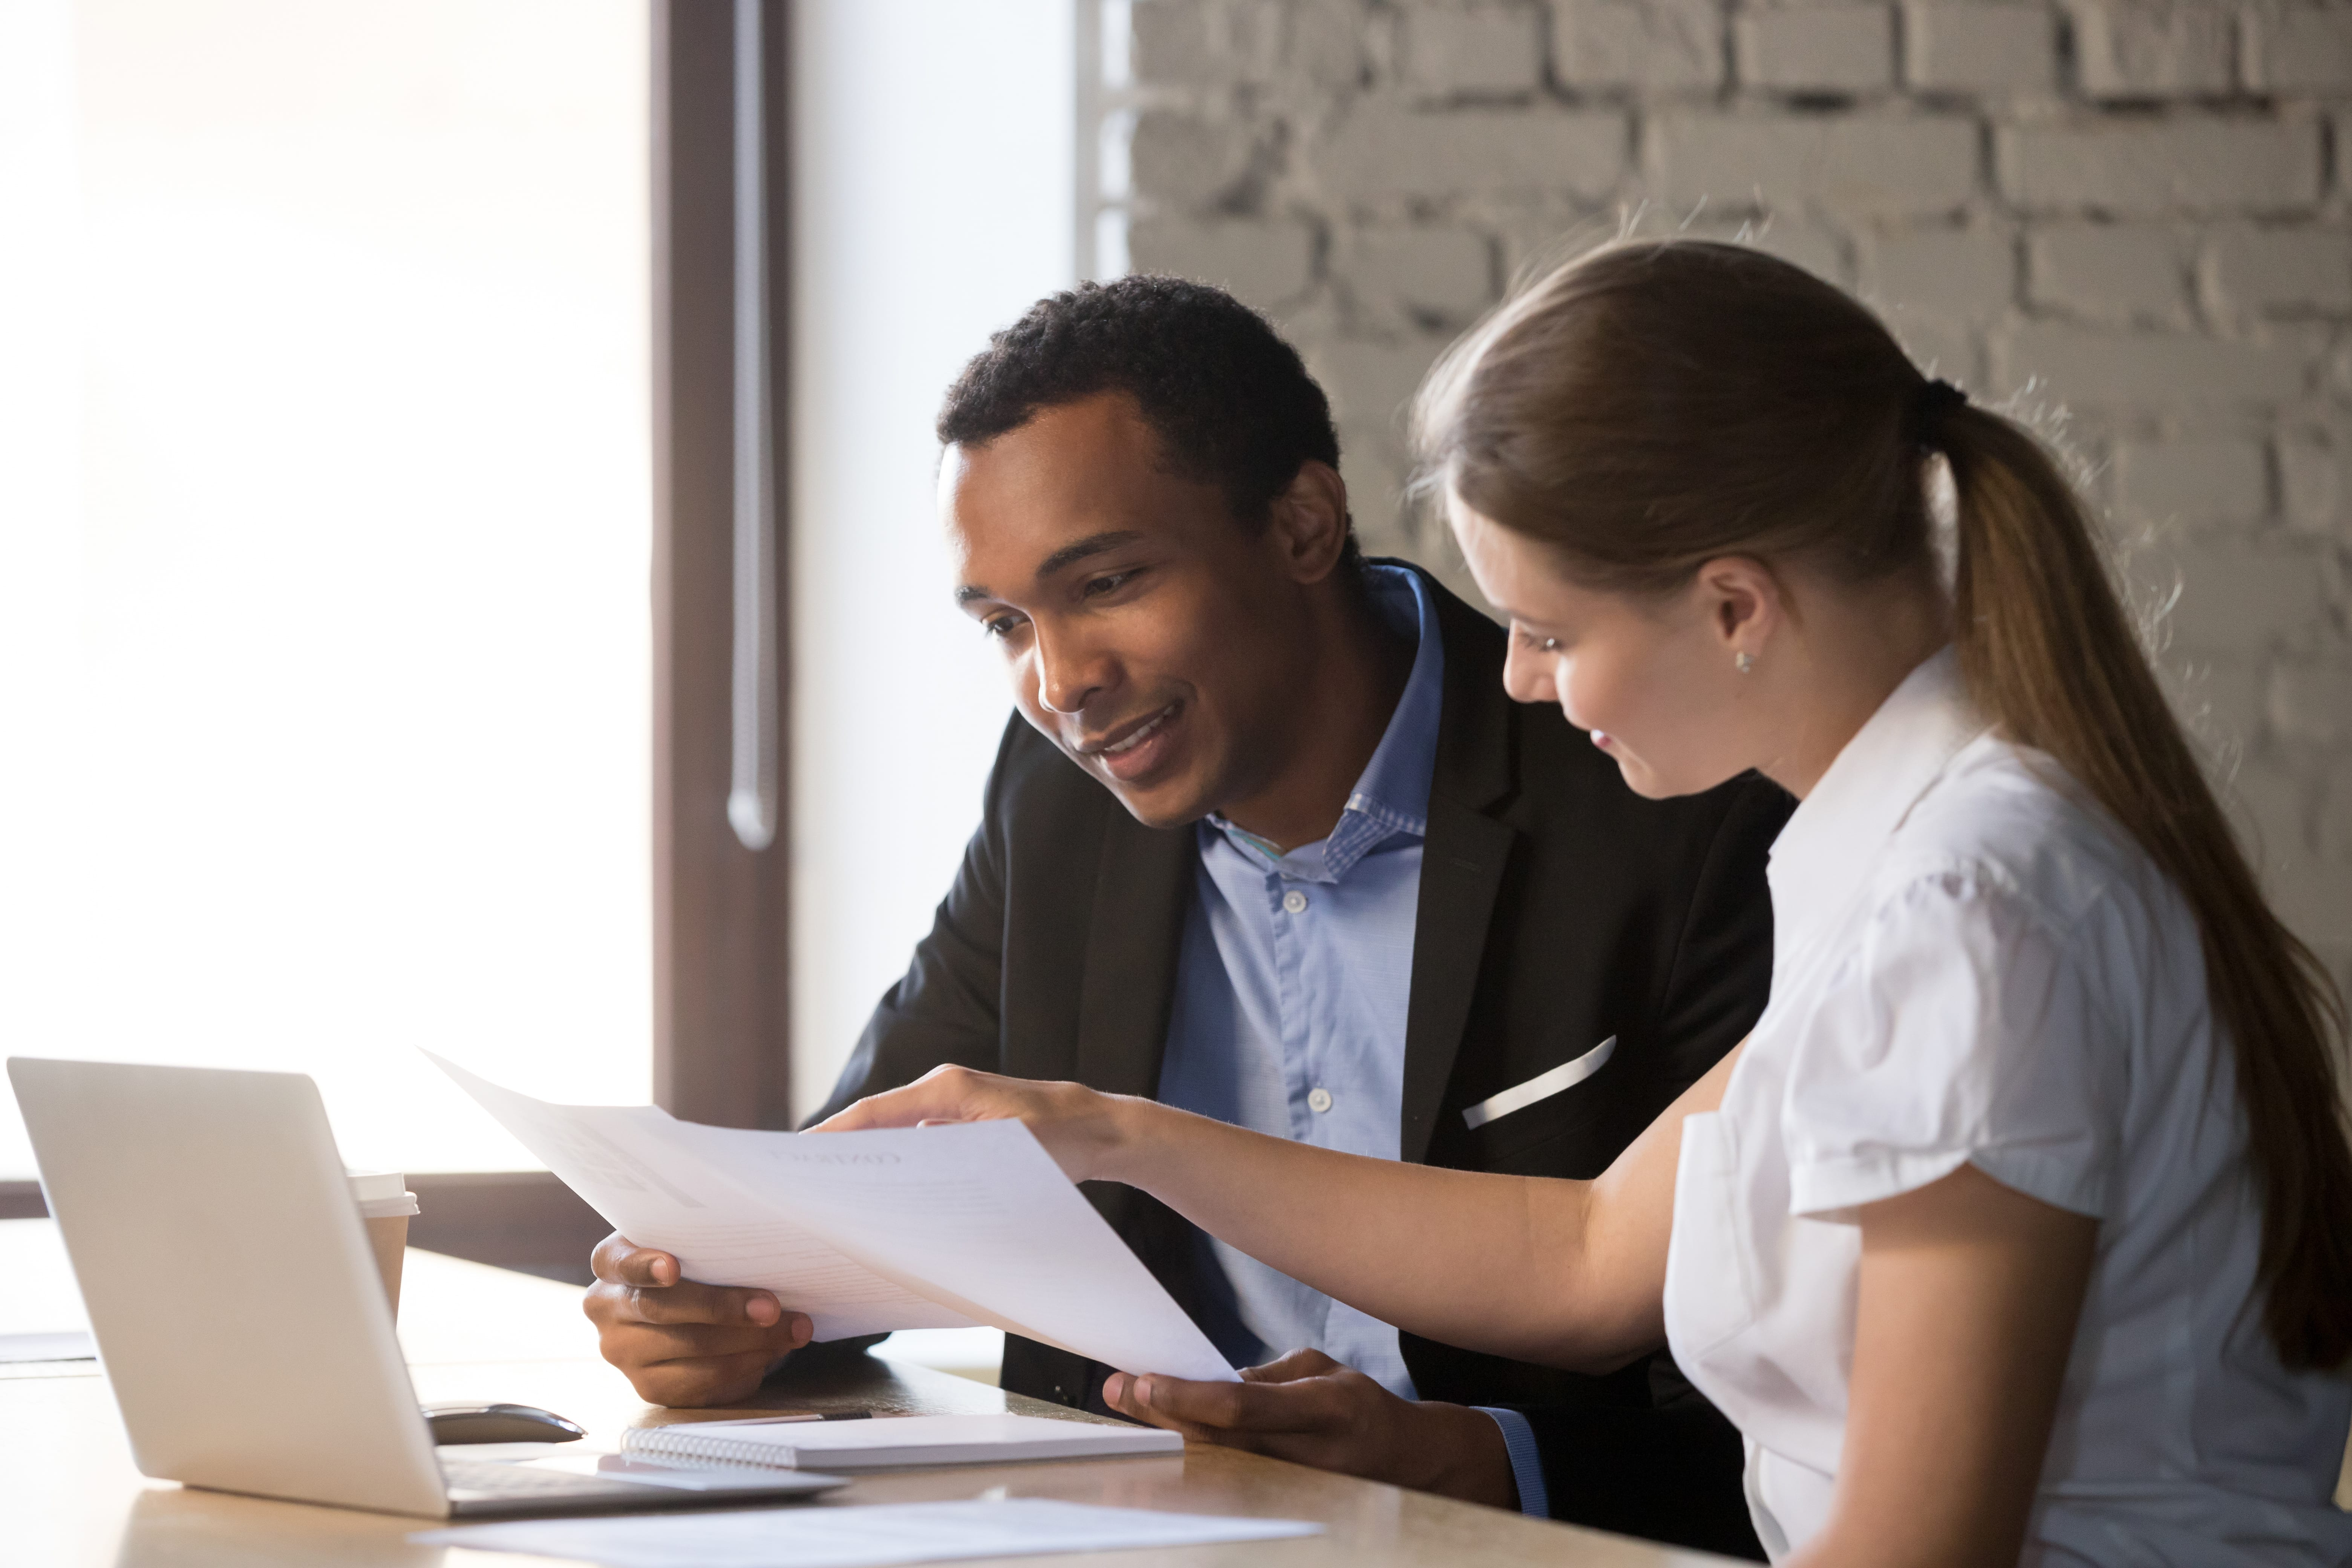 Financial Advisor Consulting Client About Contract